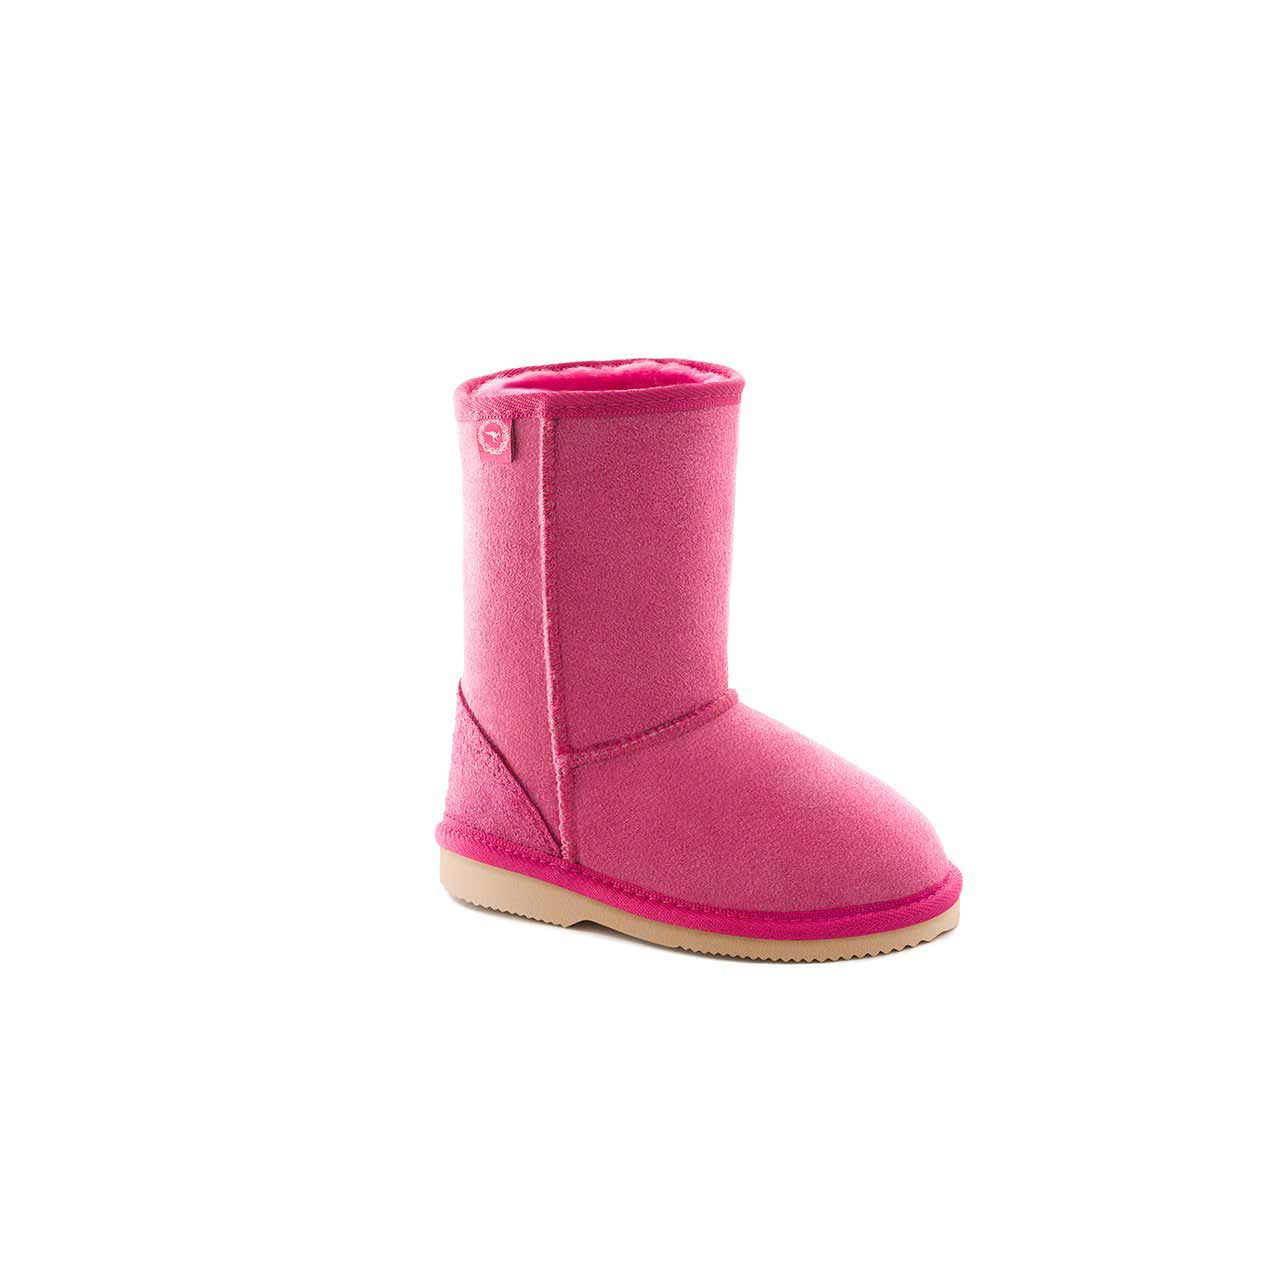 Children's Long Boots | 100% Australian Made | Ugg Australia®